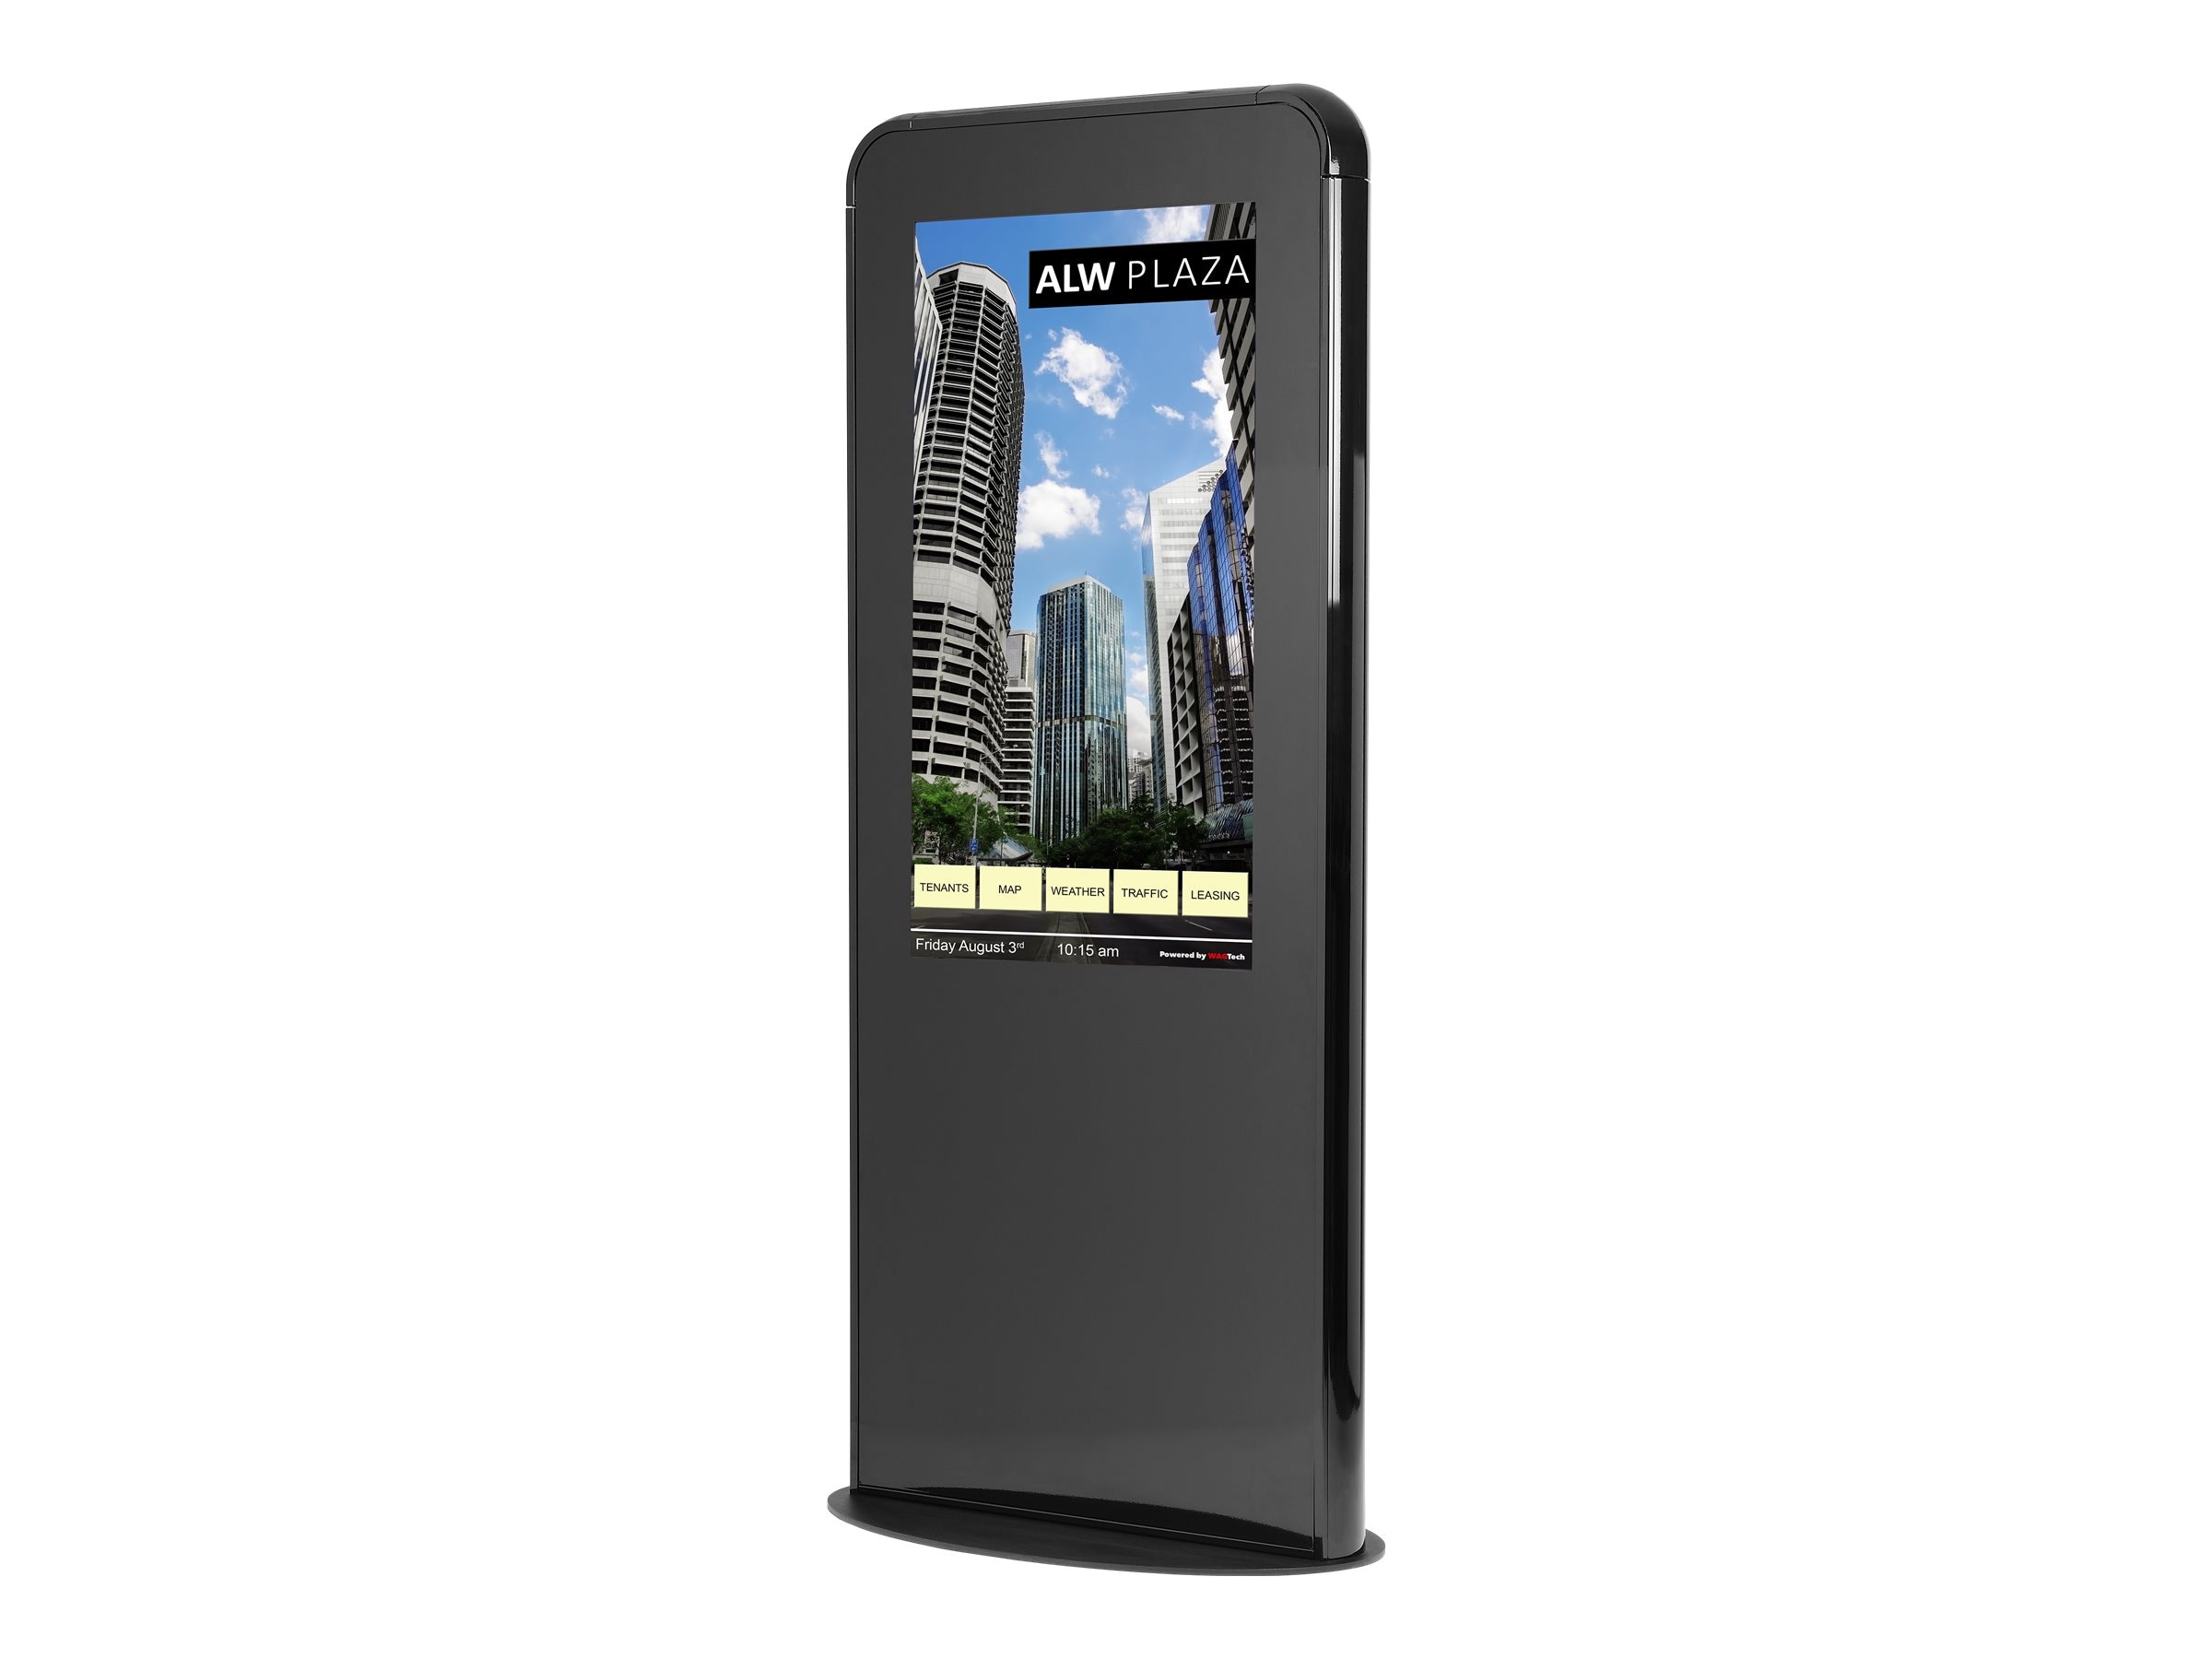 NEC 46 Full HD LED-LCD Touchscreen Portait Kiosk, Black